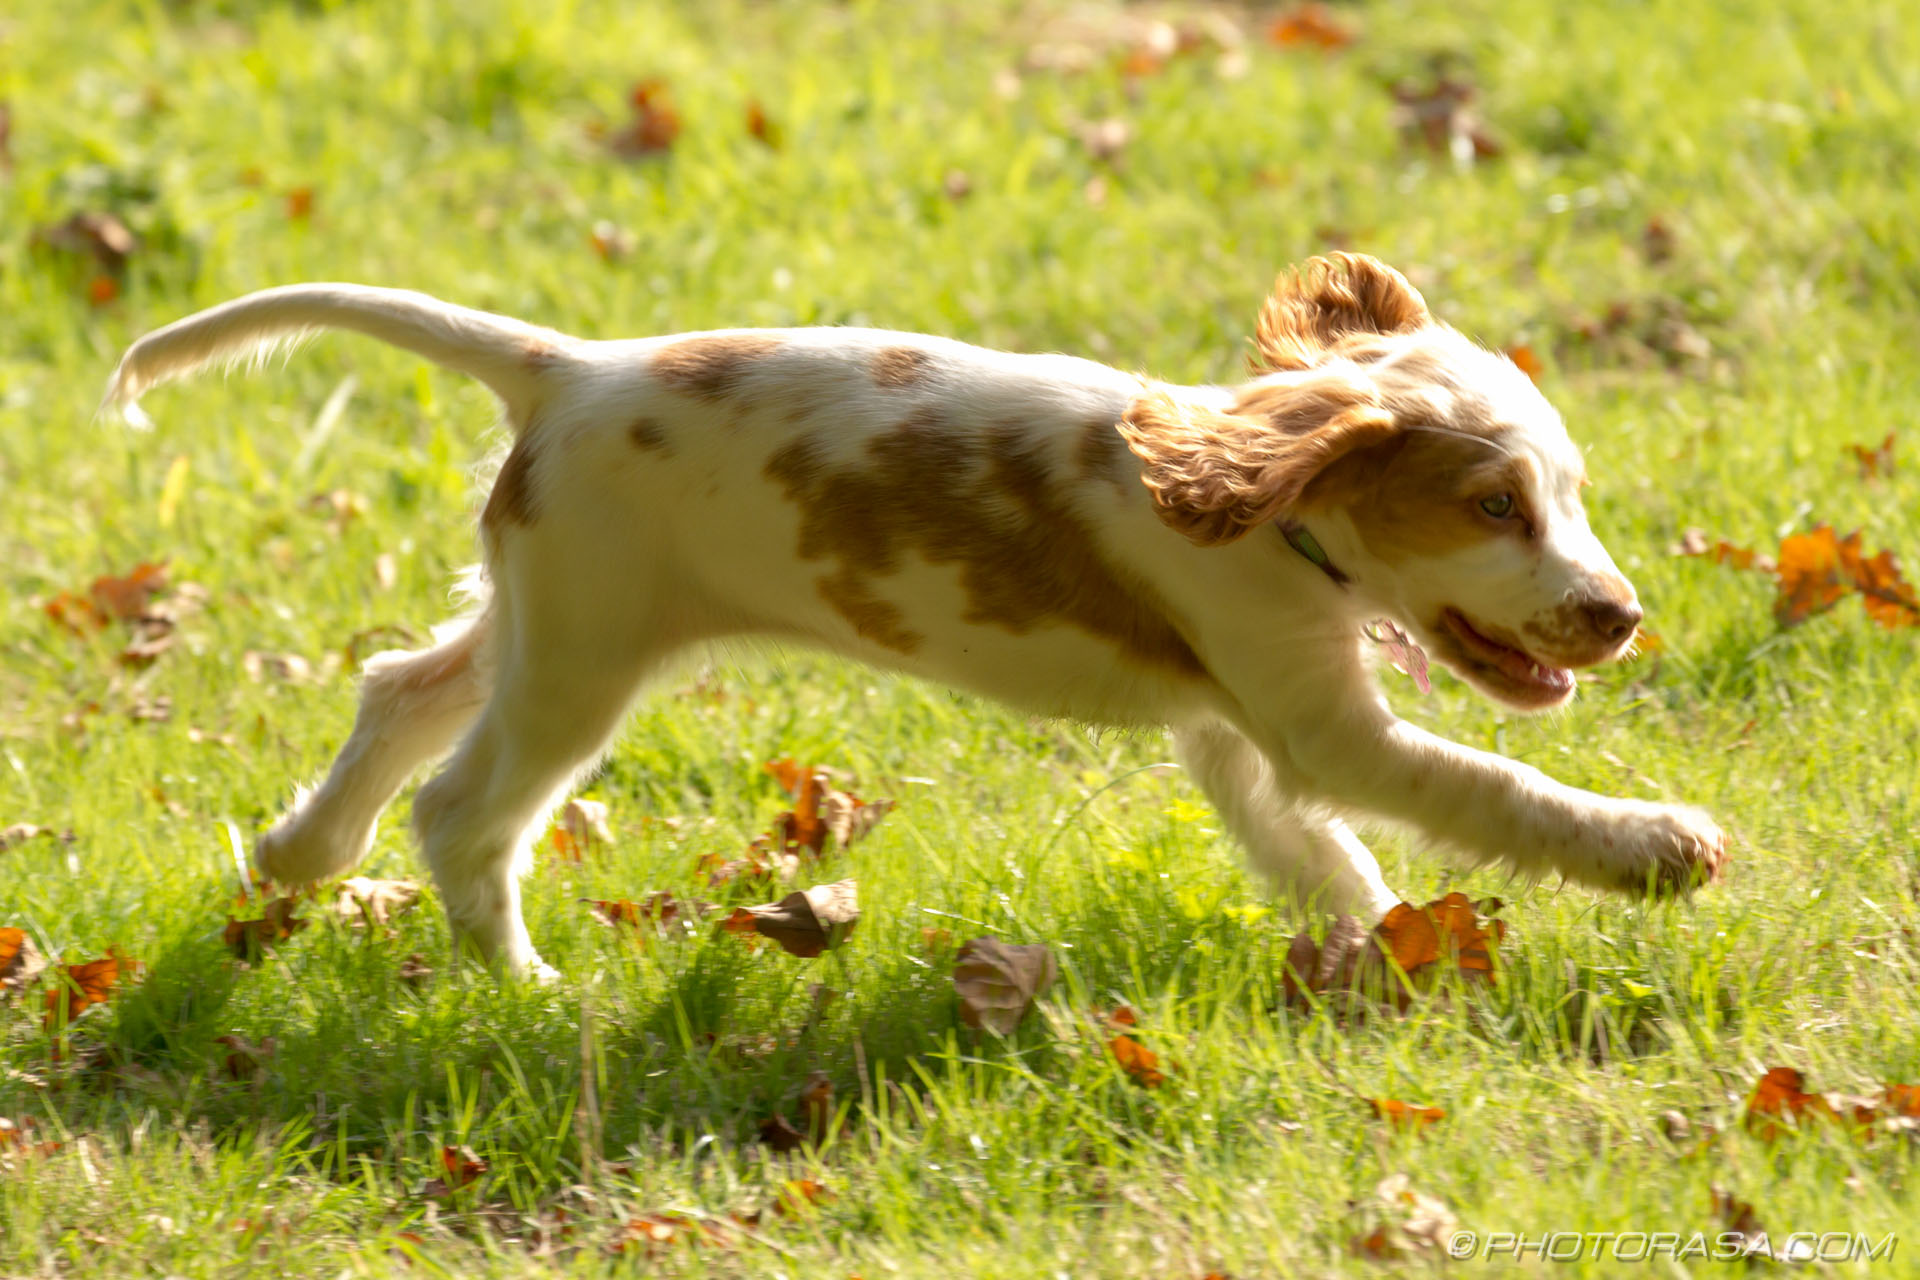 http://photorasa.com/spaniel-puppy-playing-sun/puppy-galloping/